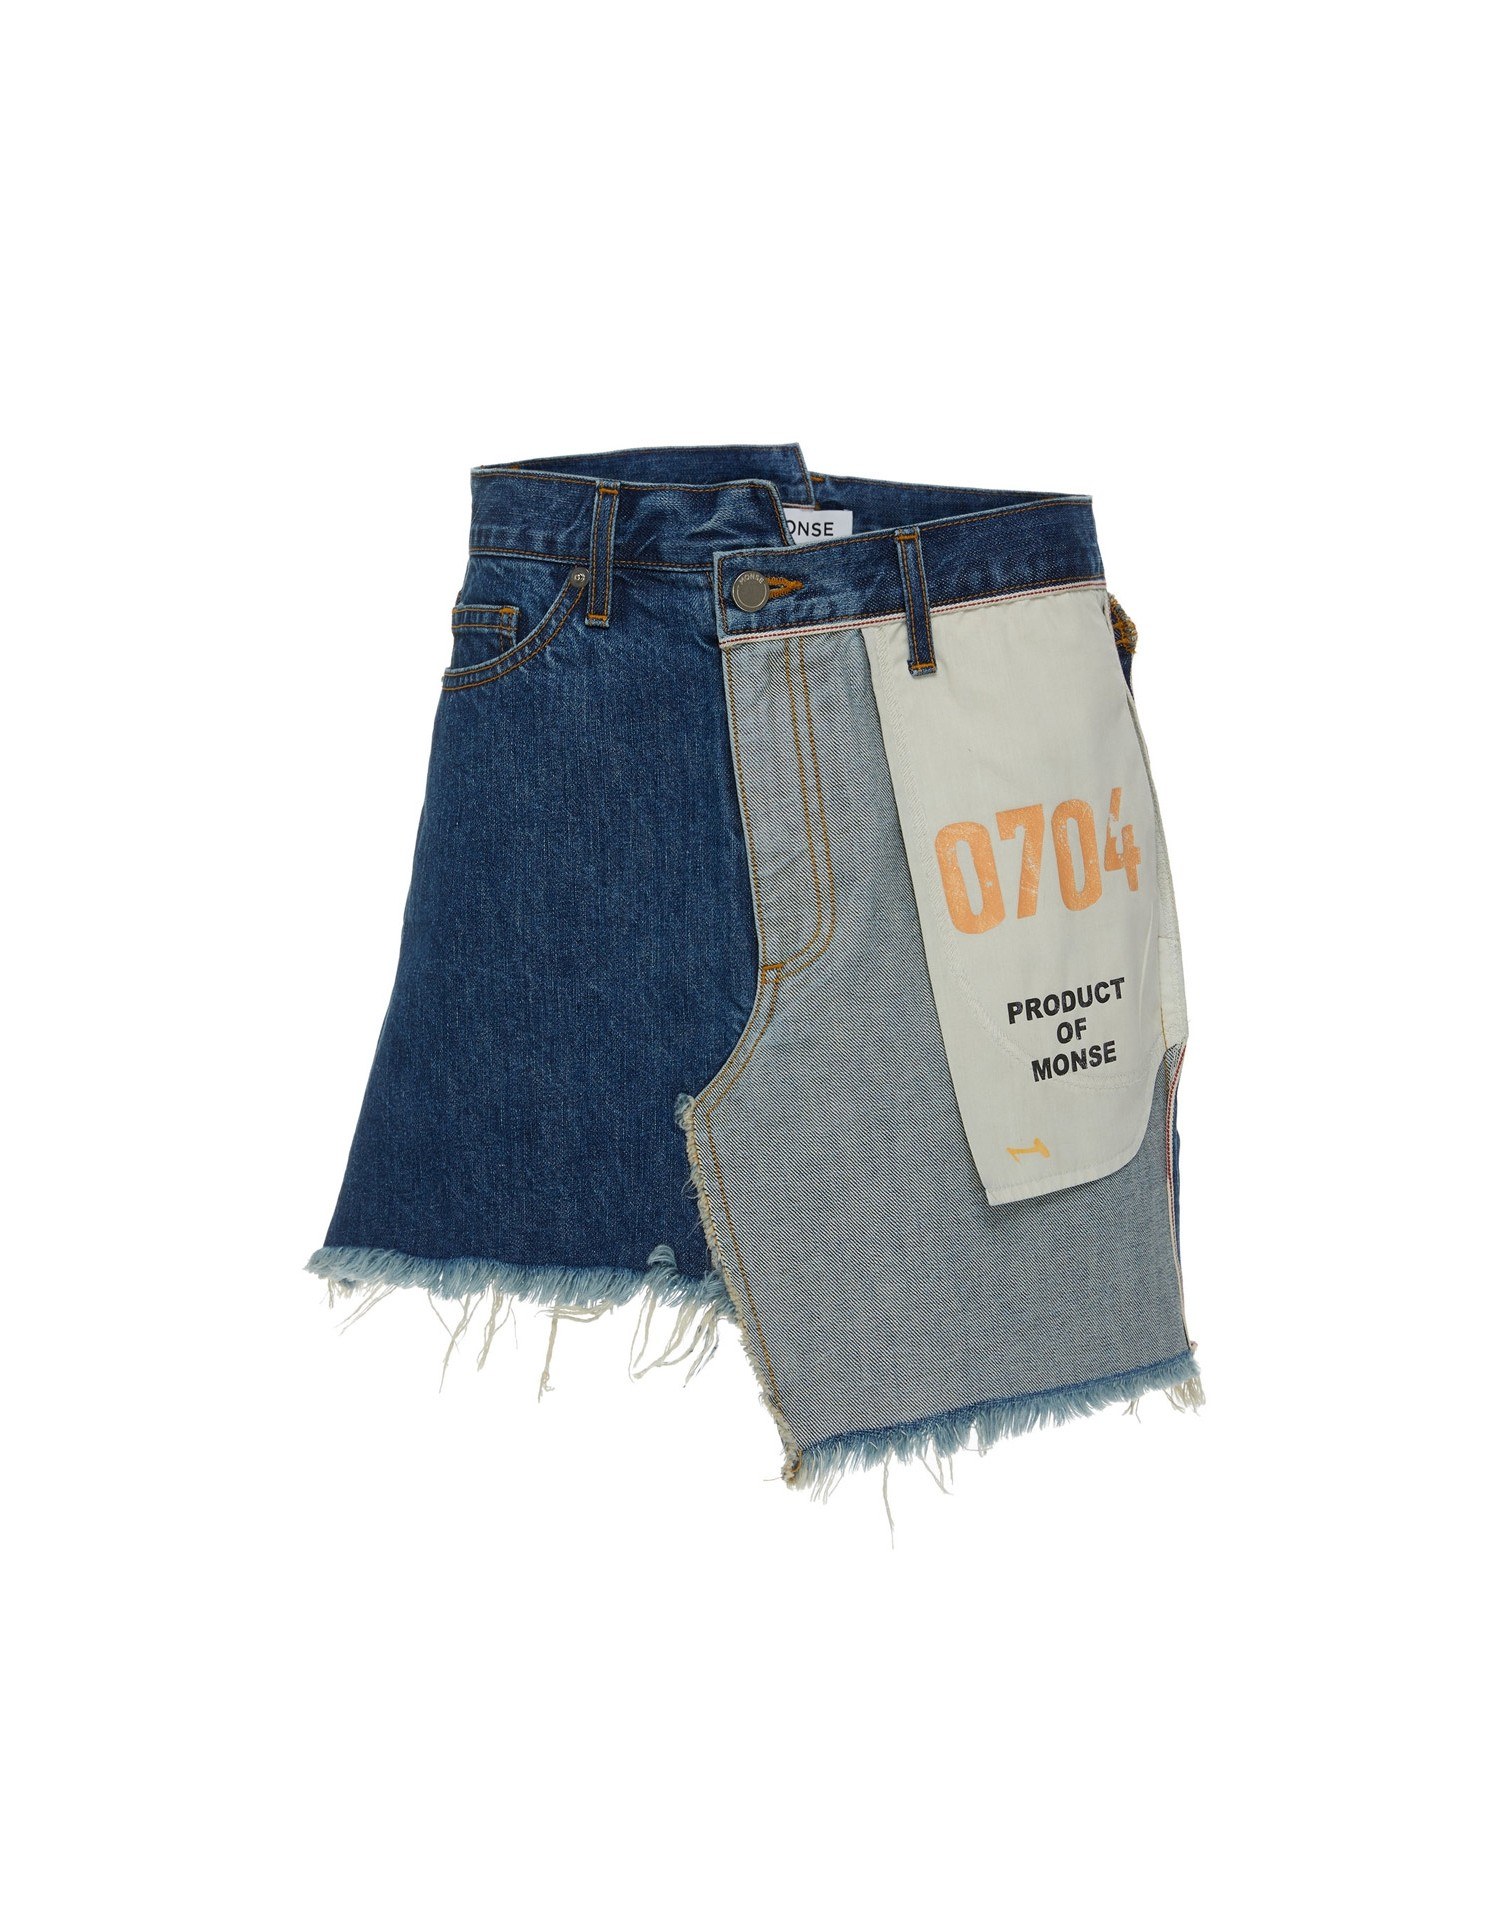 MONSE Inside Out Denim Skirt on Model Front View